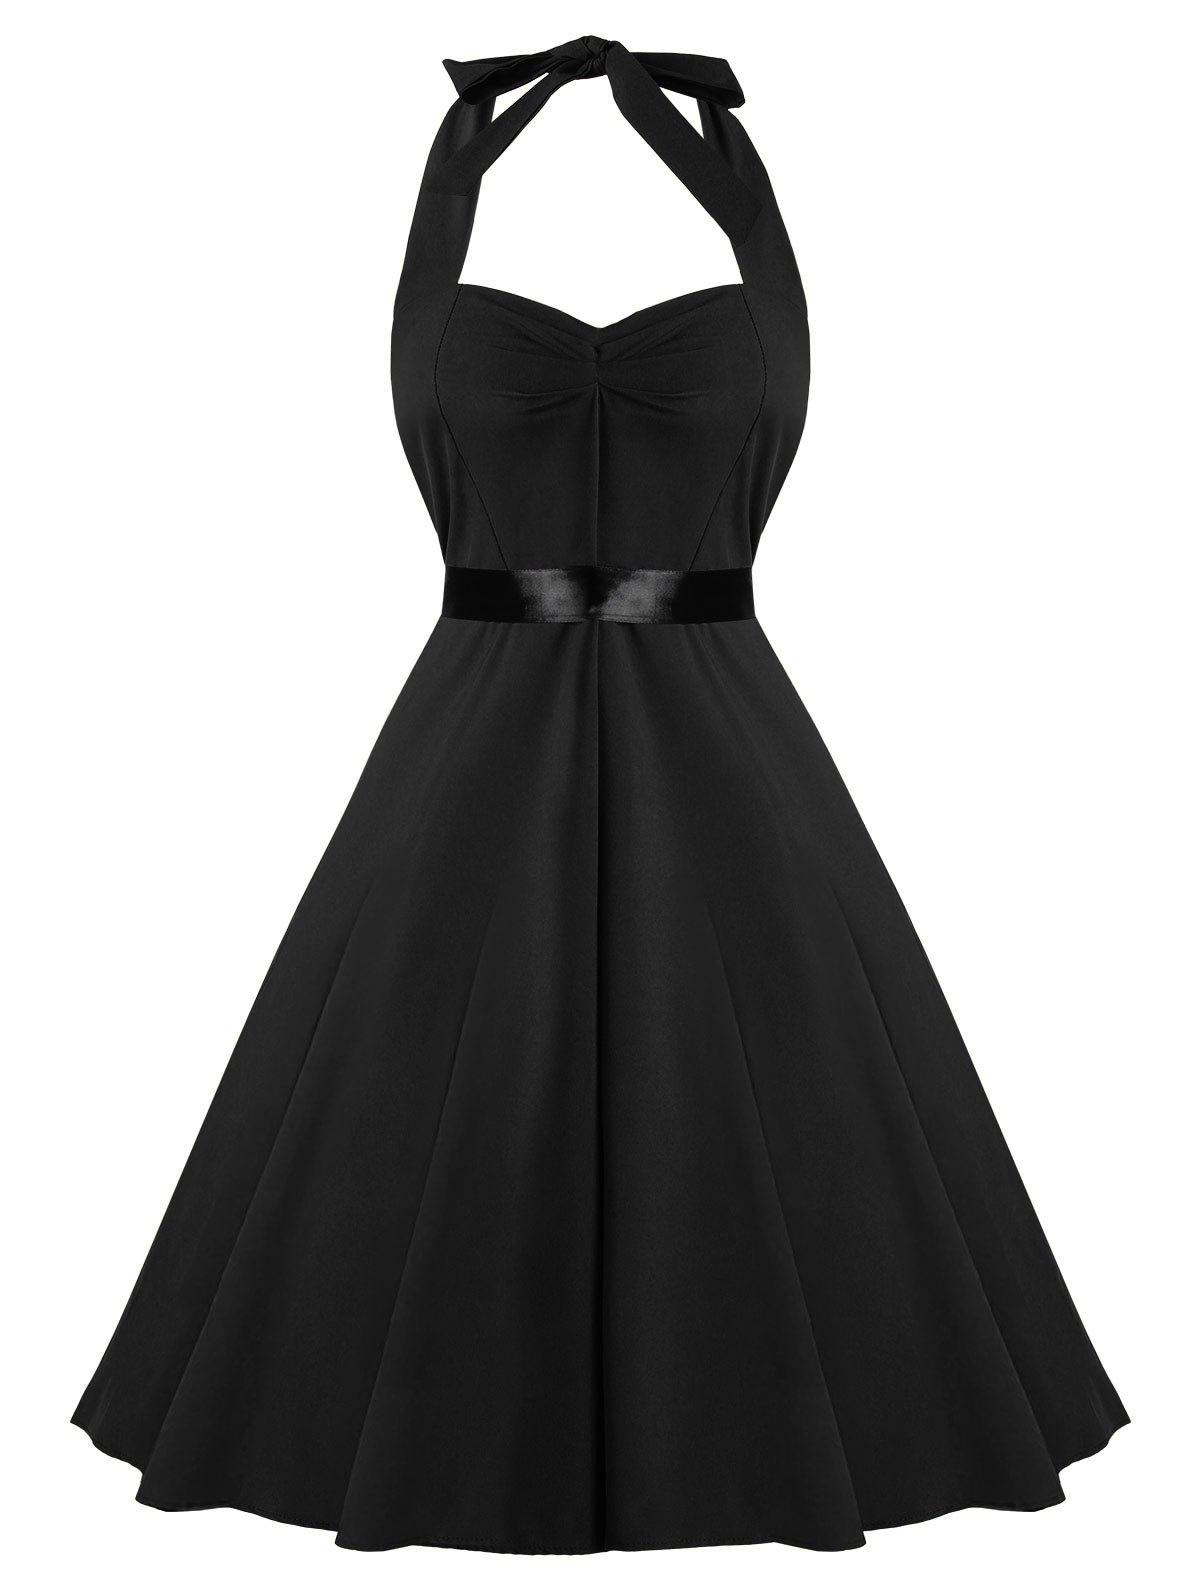 Unique Vintage Fit and Flare Halter Dress a290d7057a15